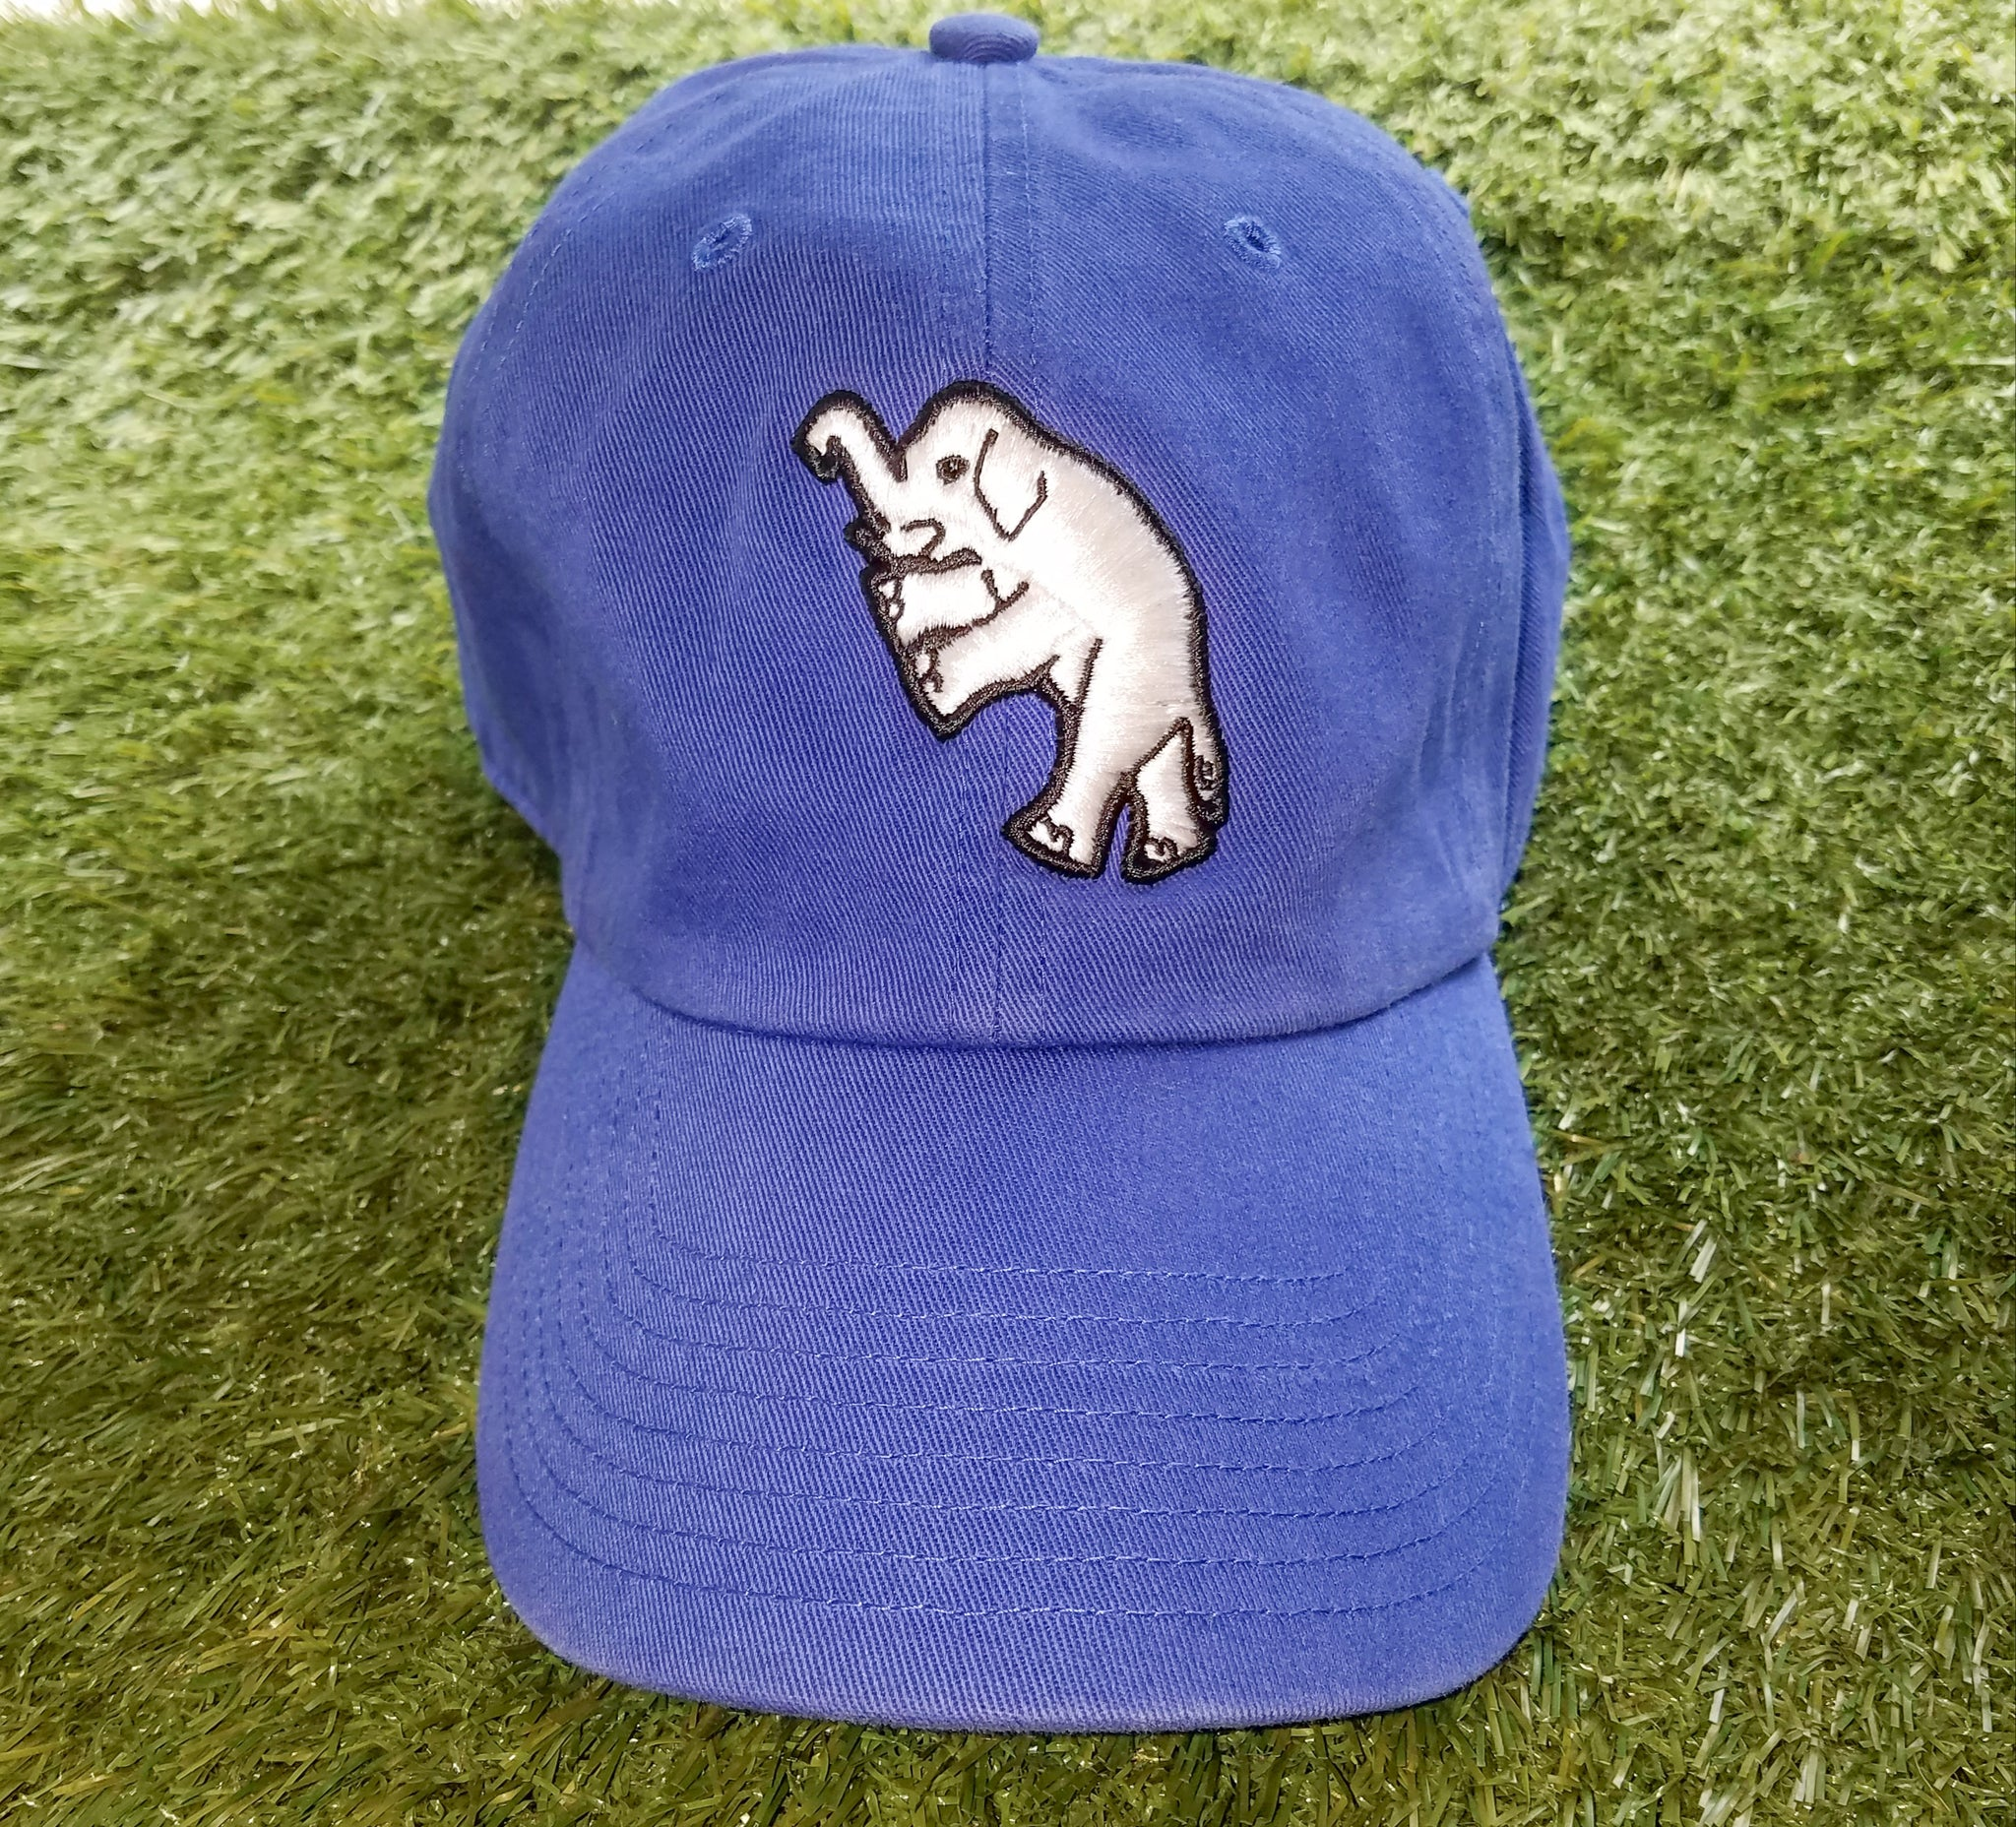 new product 09d8f af1d7 Philadelphia Athletics Elephant Adjustable Royal Blue Cap